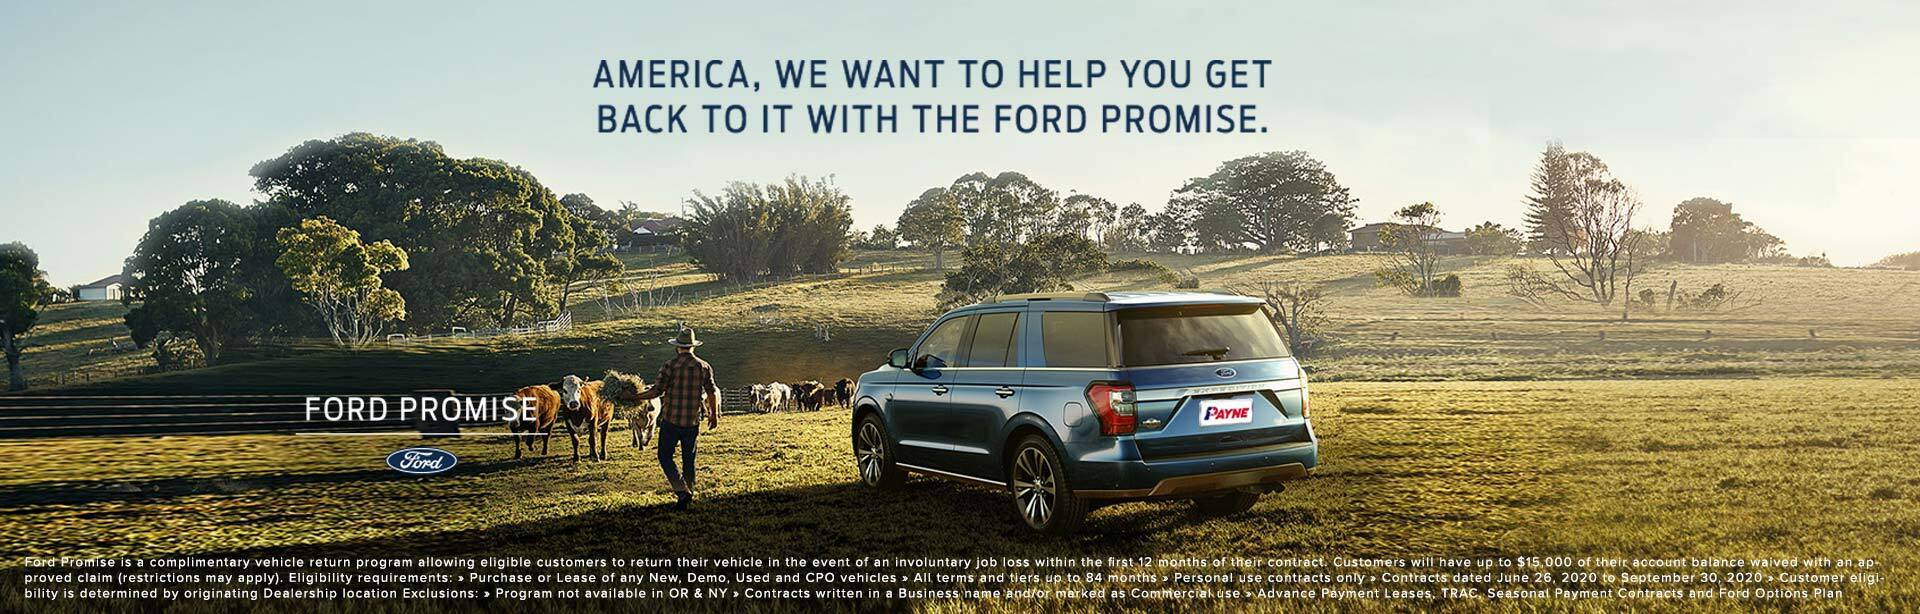 Ford Promise